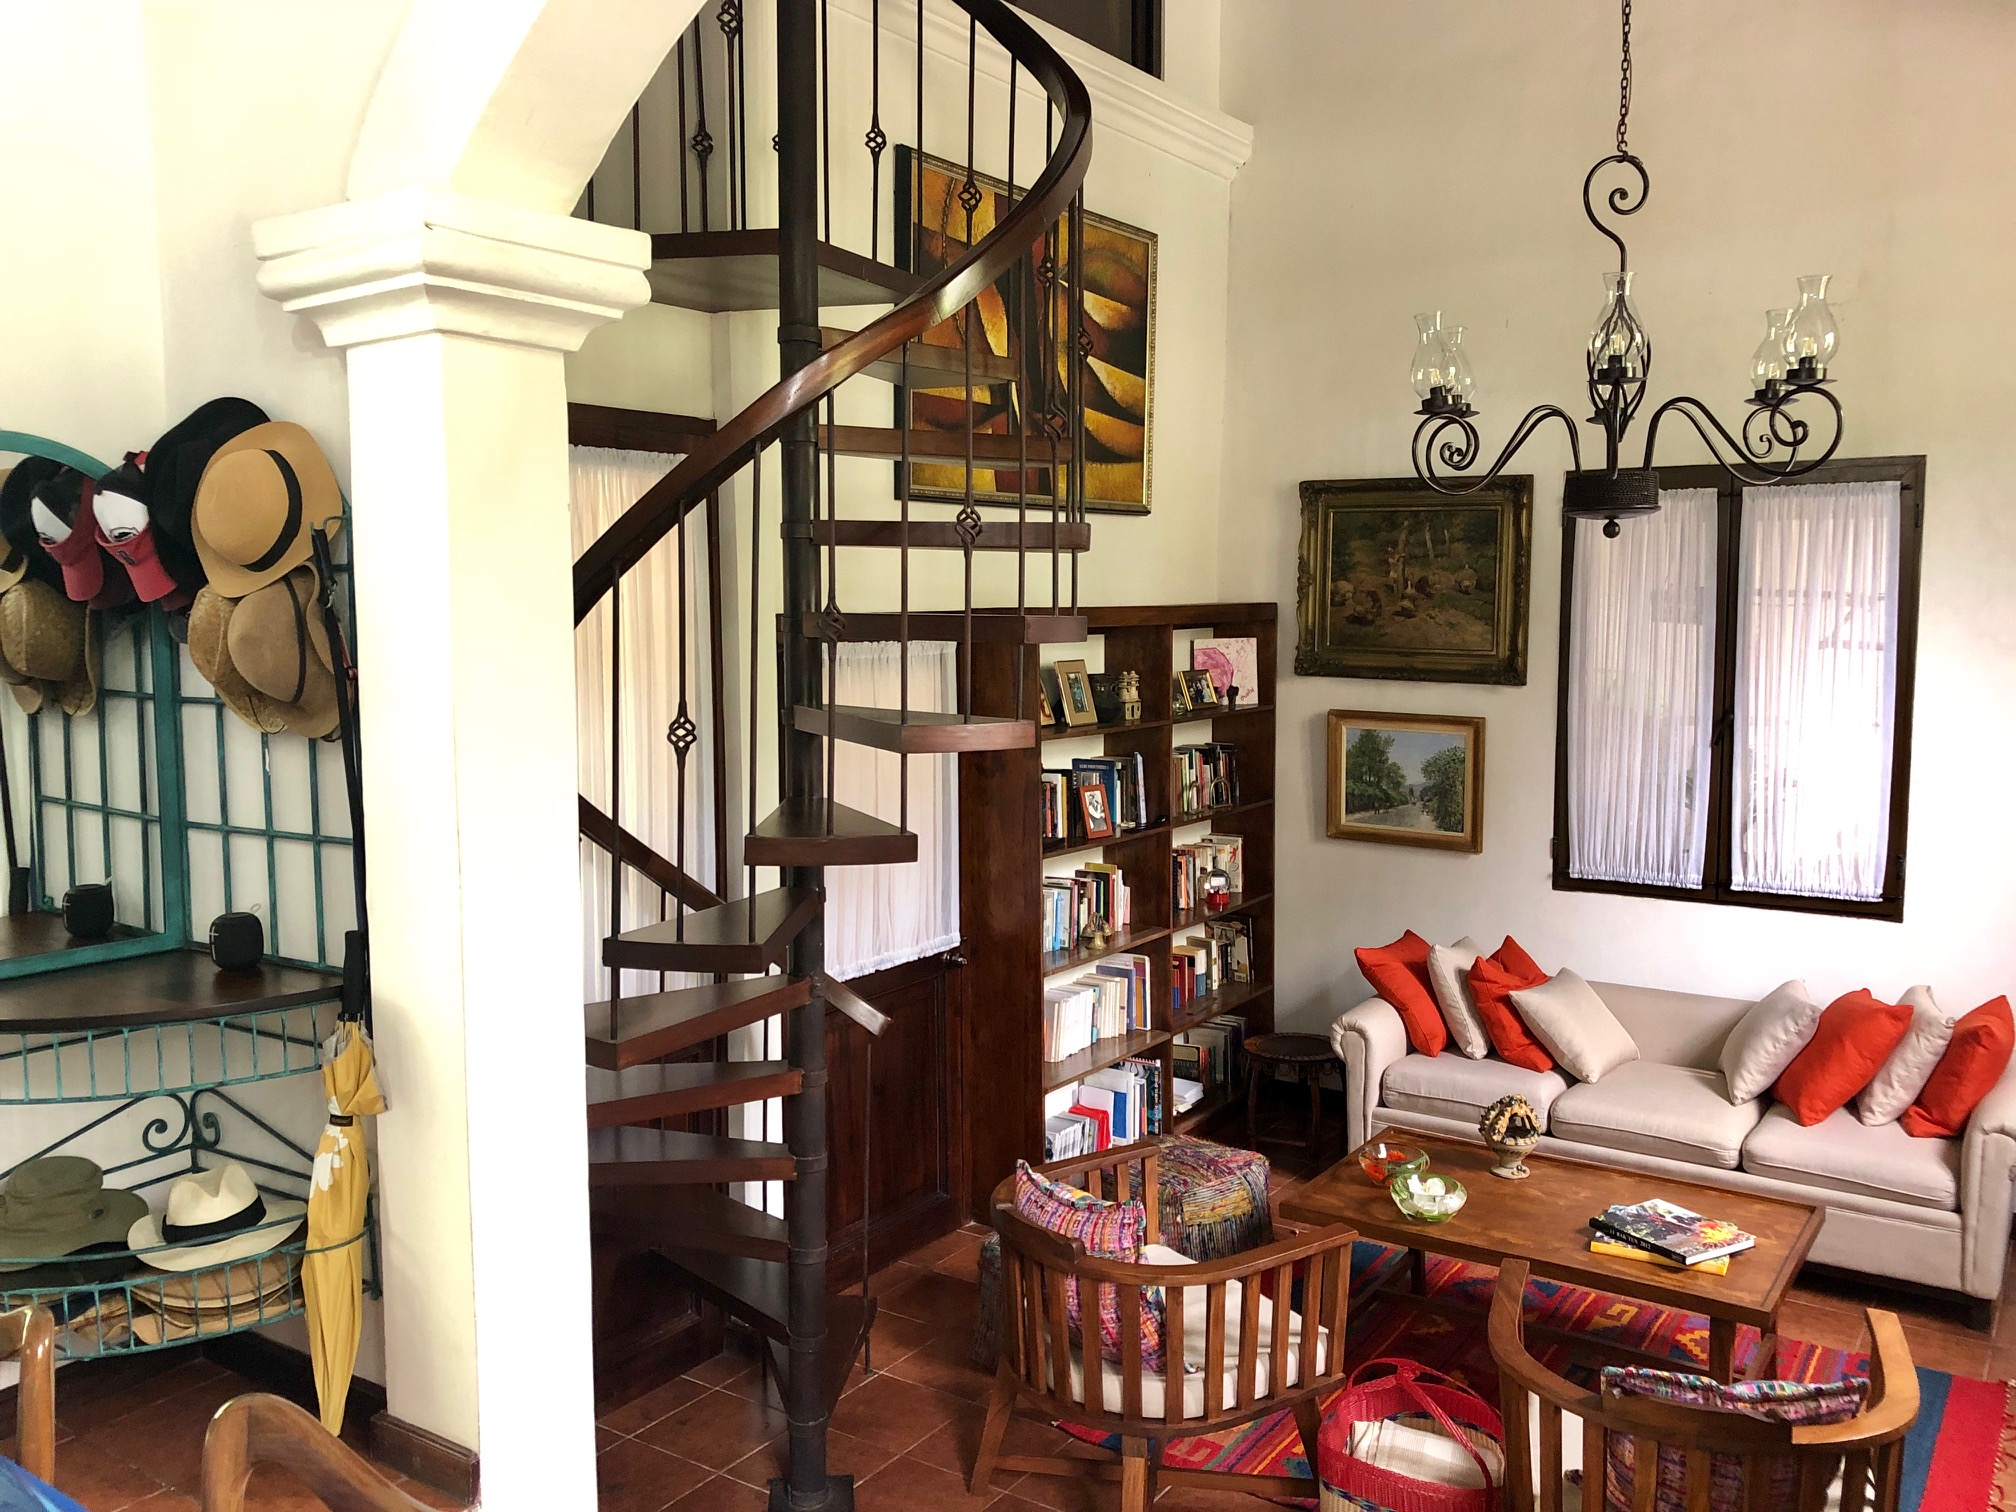 4943 BEAUTIFUL HOUSE FOR RENT IN THE CENTER OF ANTIGUA